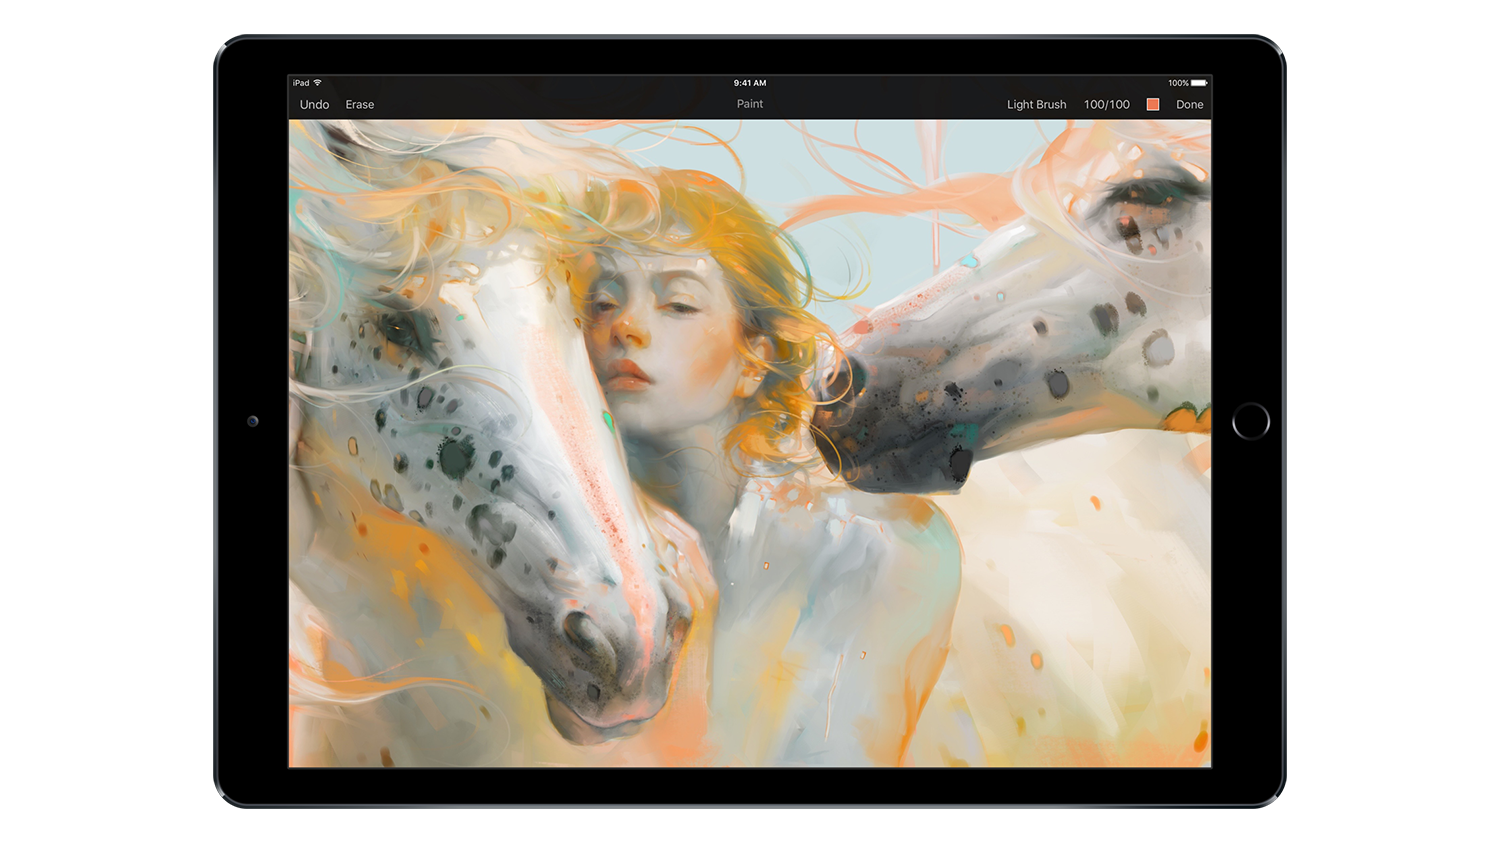 Pixelmator 2.2 is here with support for the iPad Pro